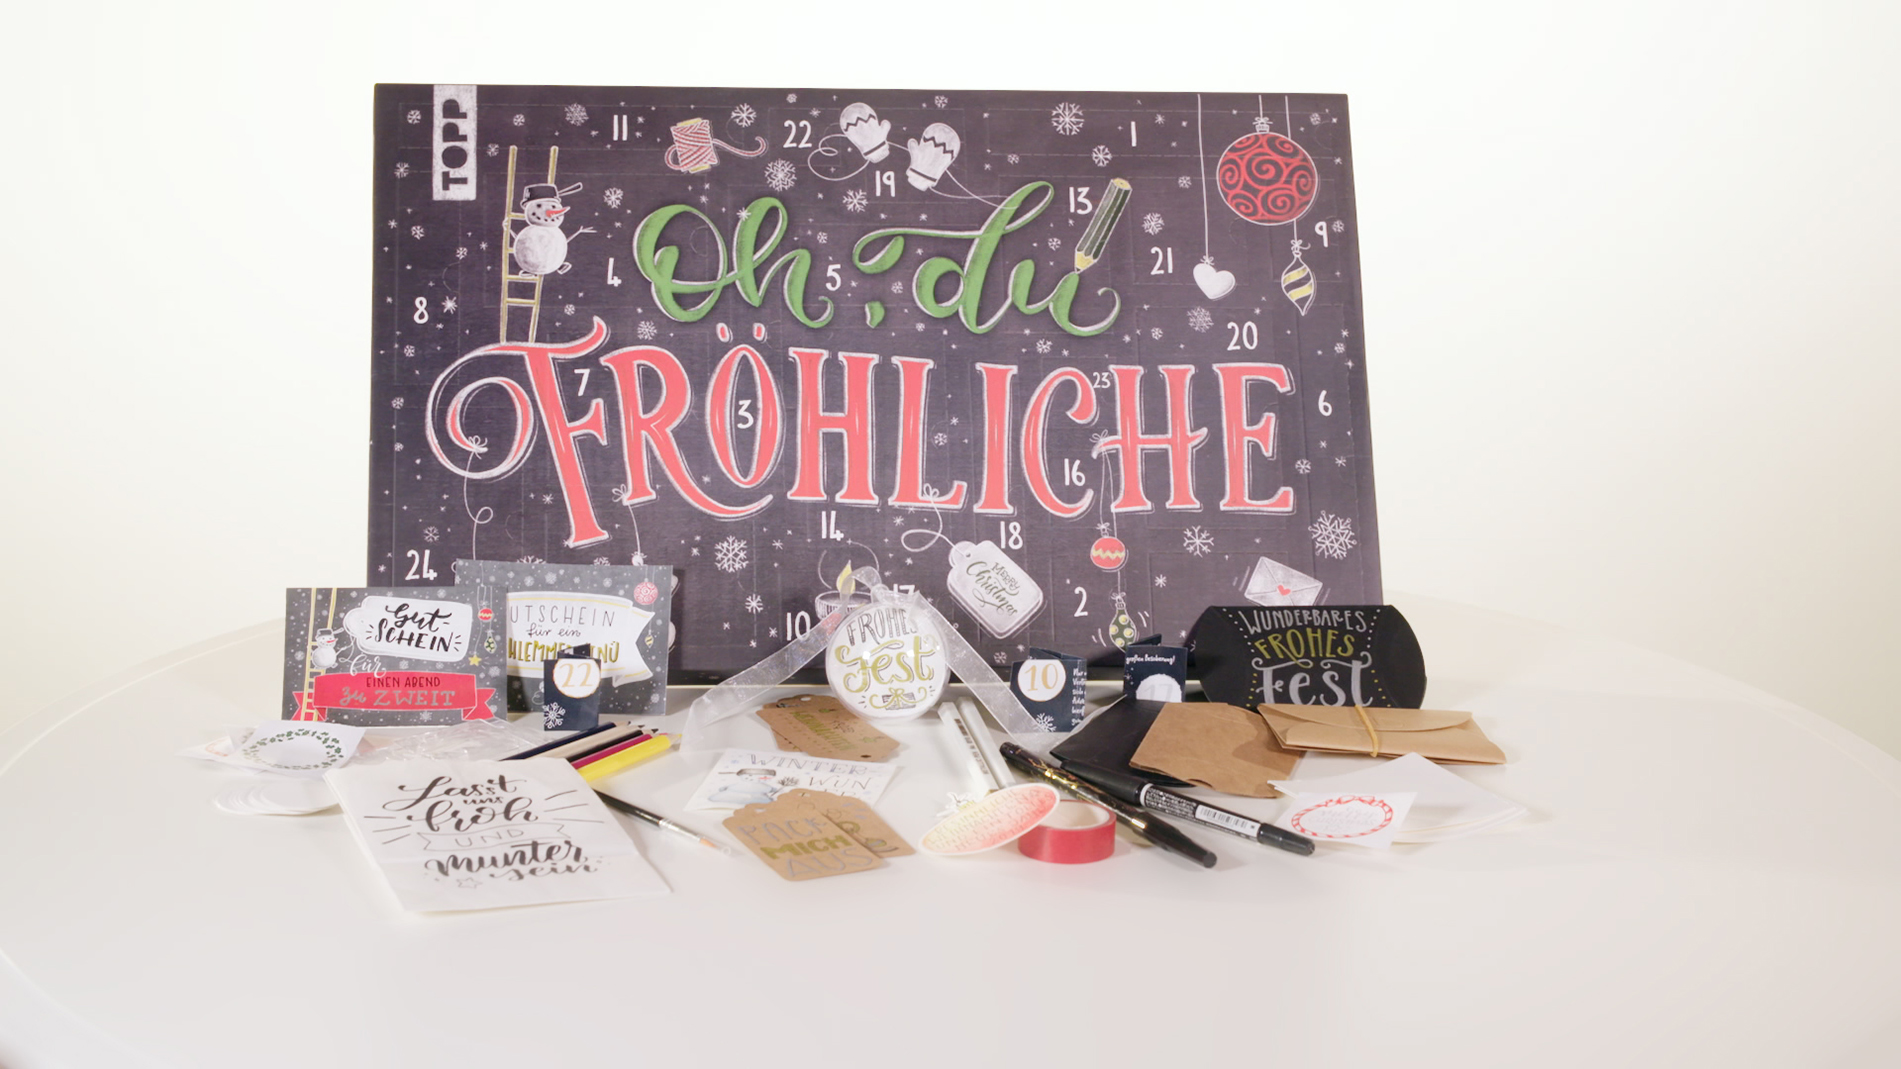 Creative Impulse Award 2nd place: frechverlag 'Handlettering Advent Calendar'